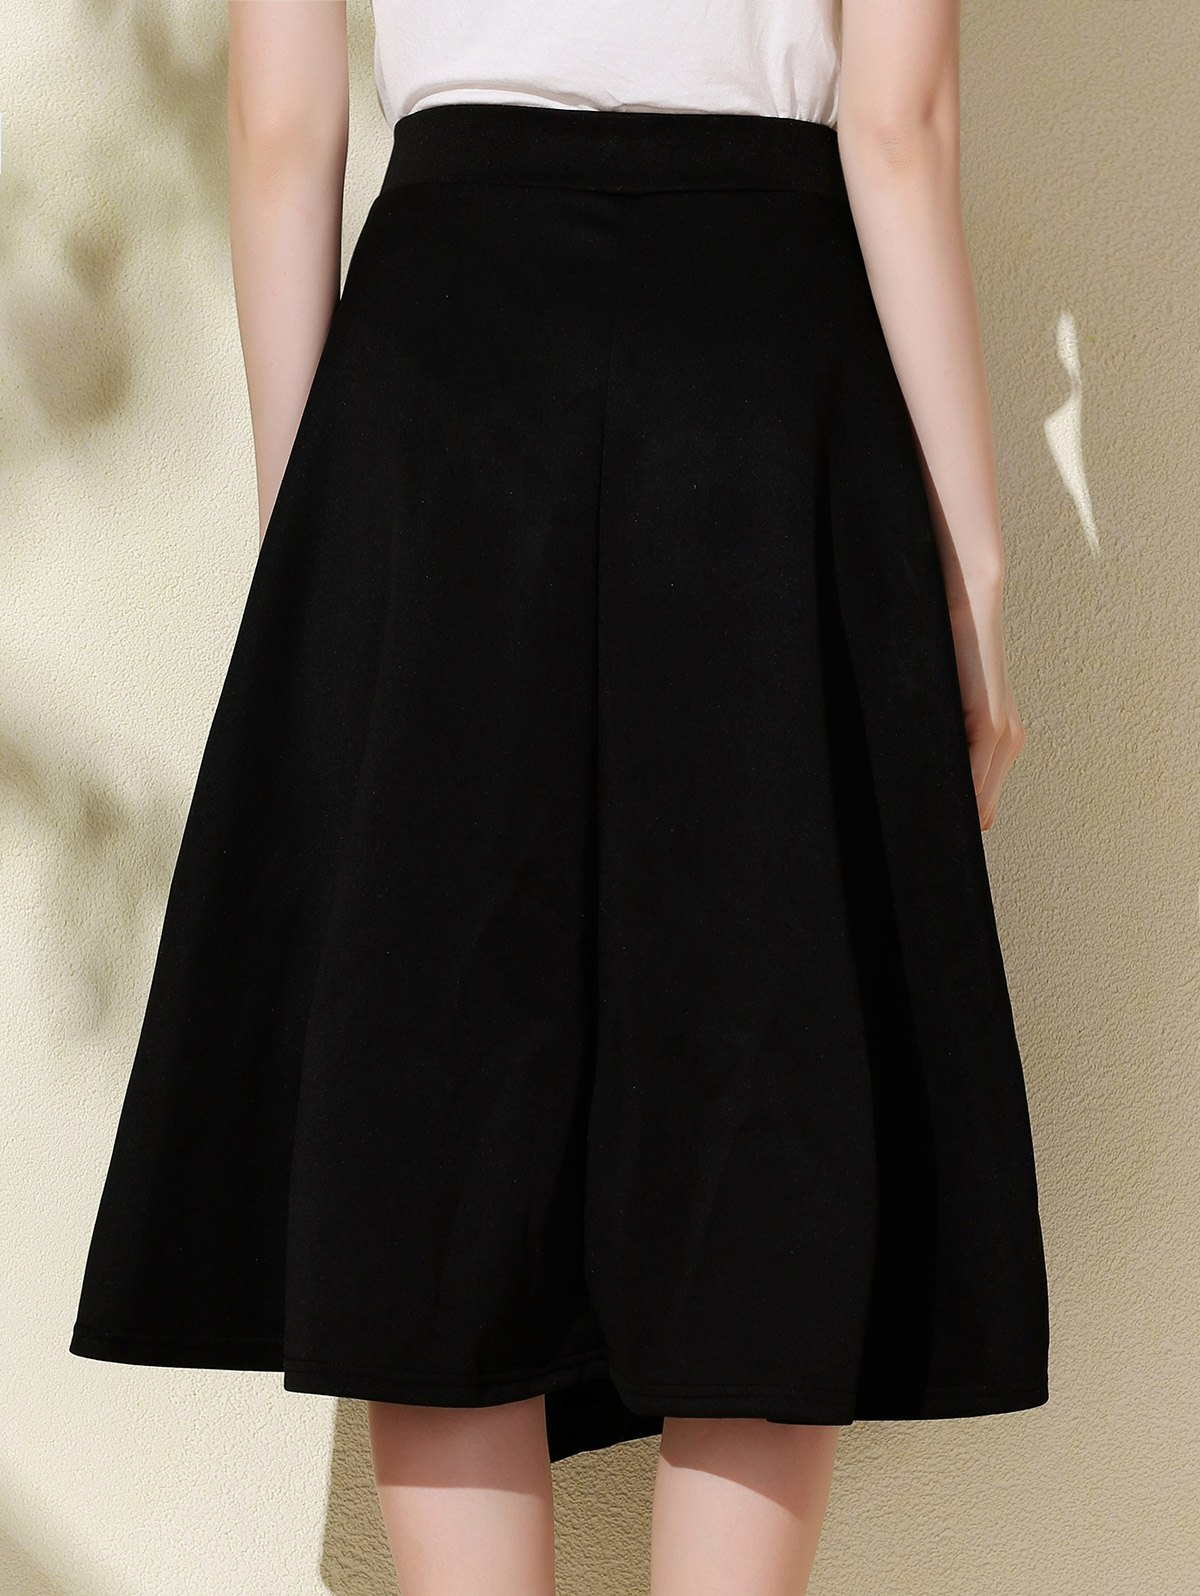 Stylish High-Waisted A-Line Solid Color Women's Midi Skirt